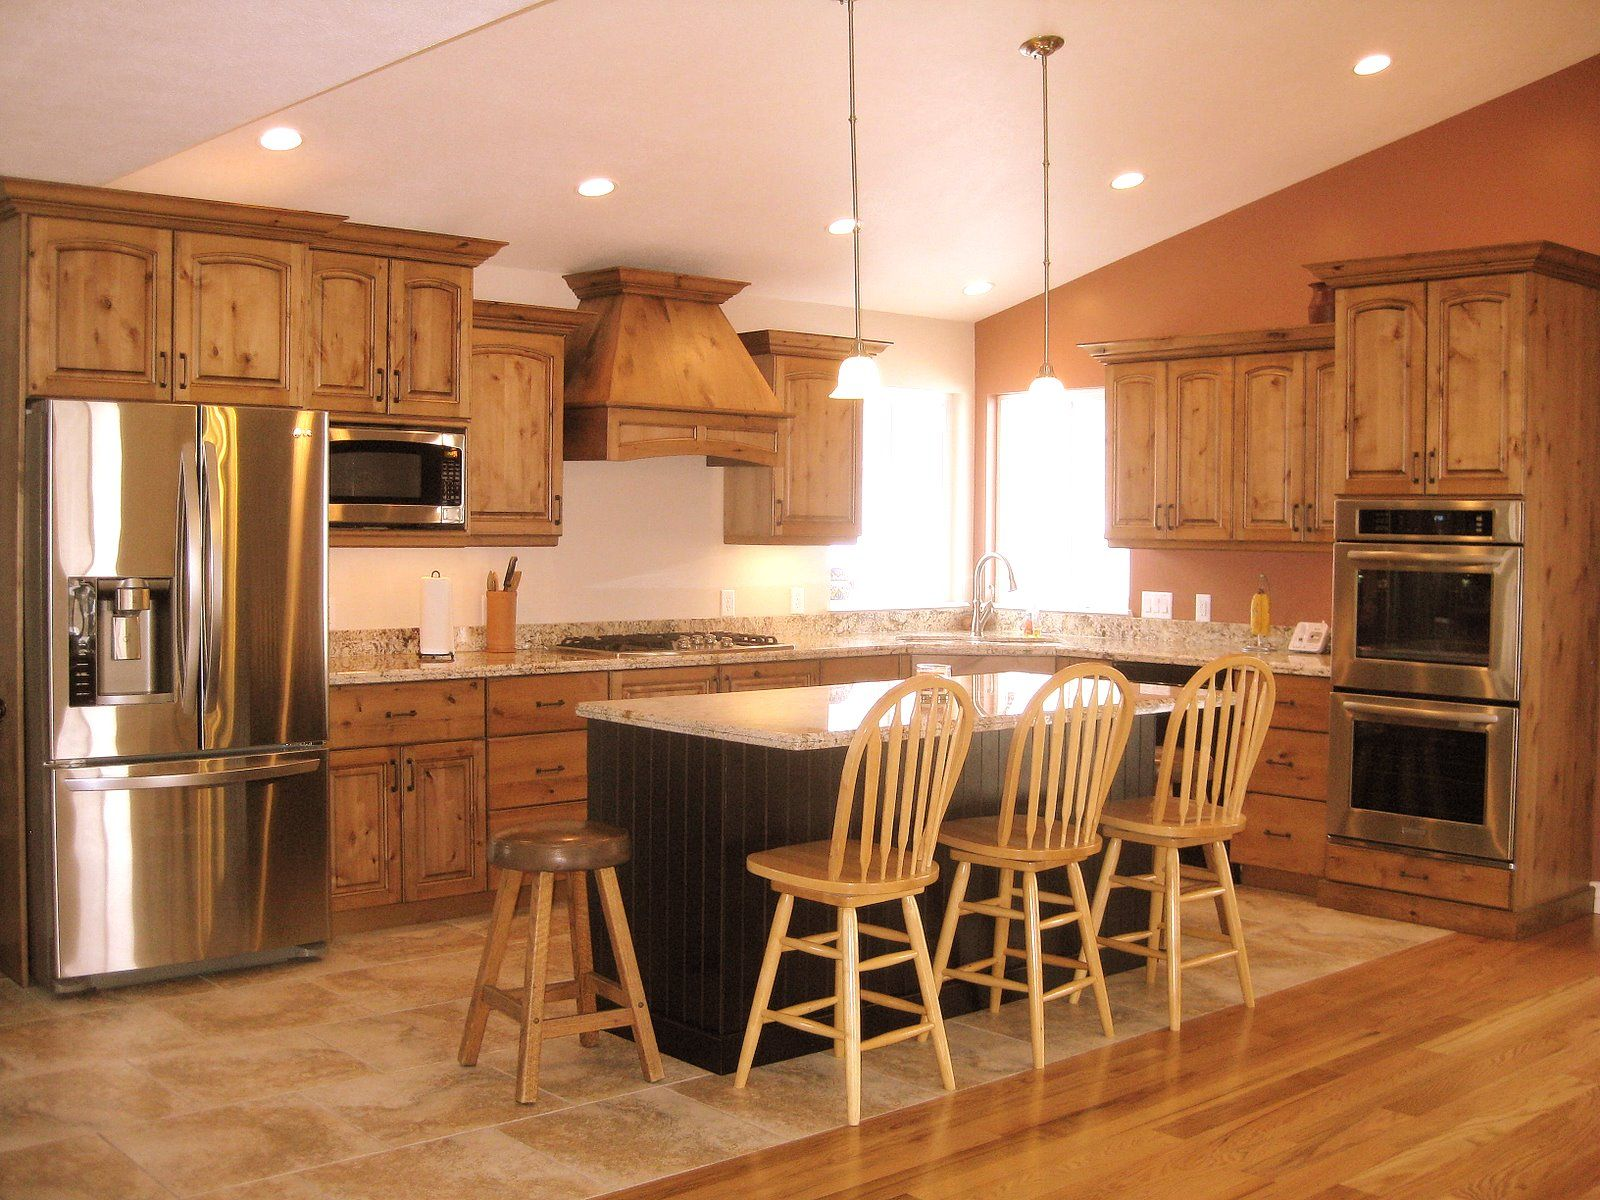 Best Alder Kitchen With Bead Board Island Alder Cabinets 640 x 480